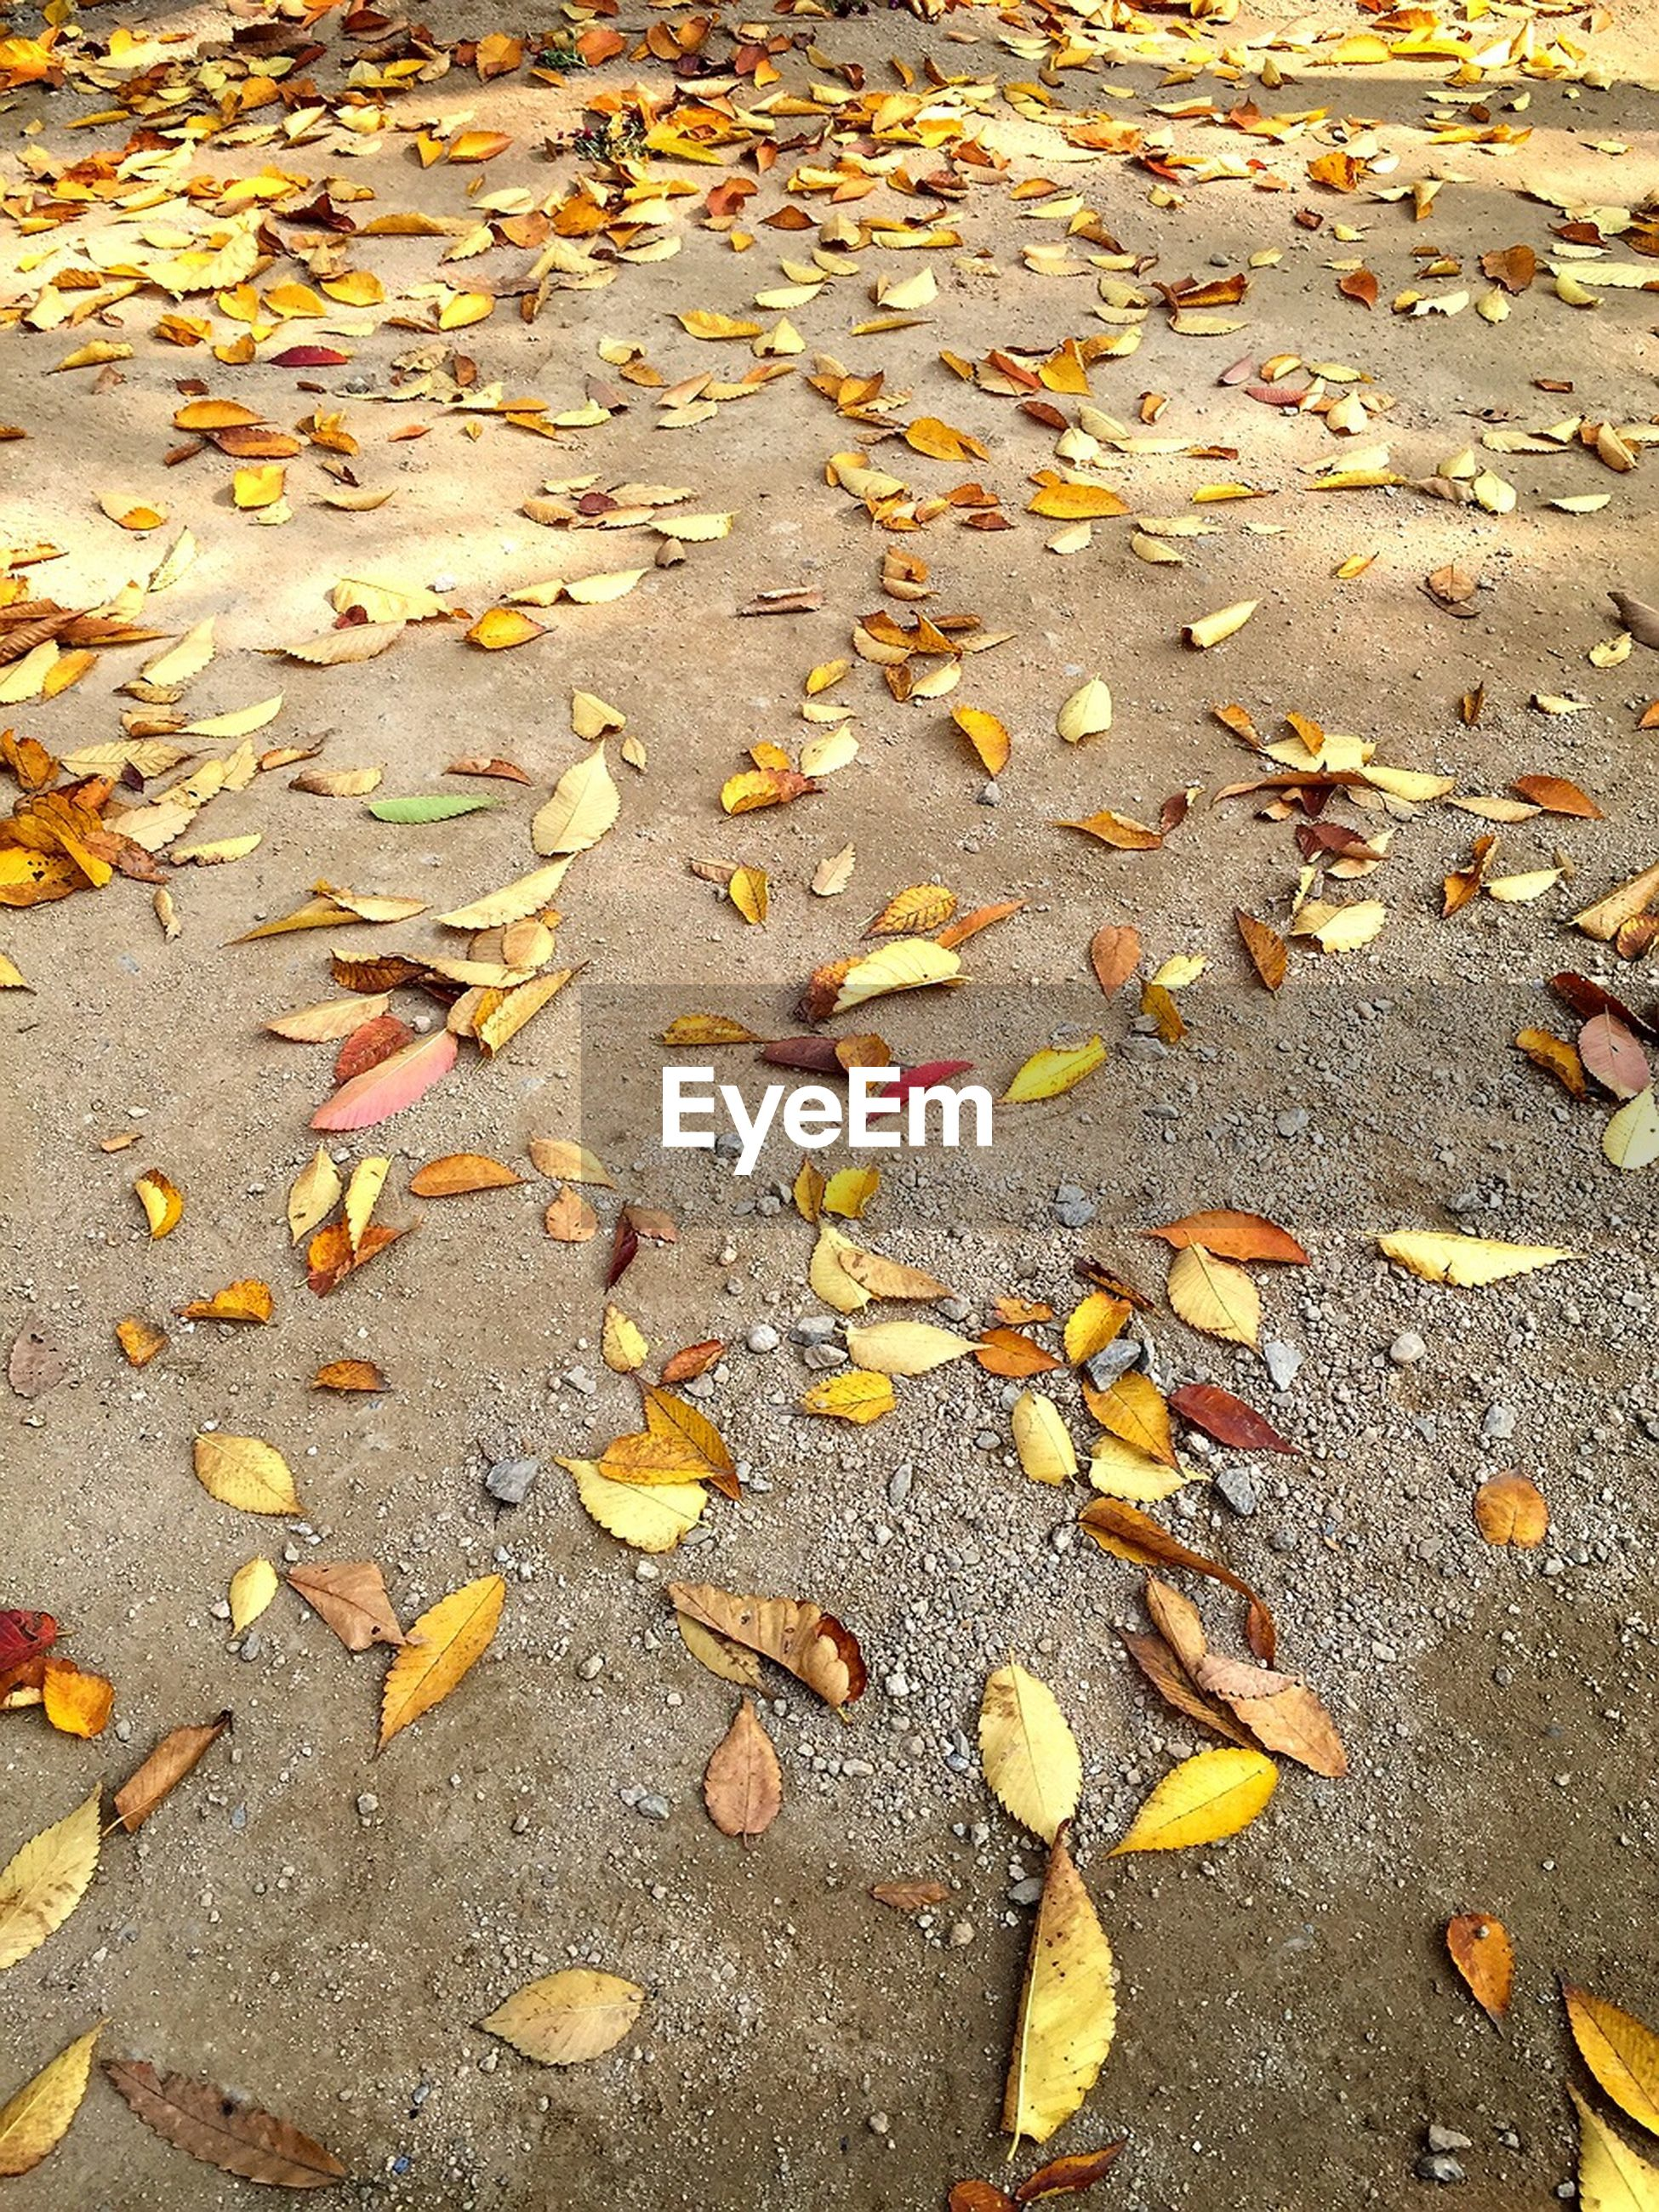 autumn, change, leaf, season, leaves, fallen, dry, street, yellow, high angle view, asphalt, falling, nature, road, abundance, outdoors, day, tranquility, surface level, no people